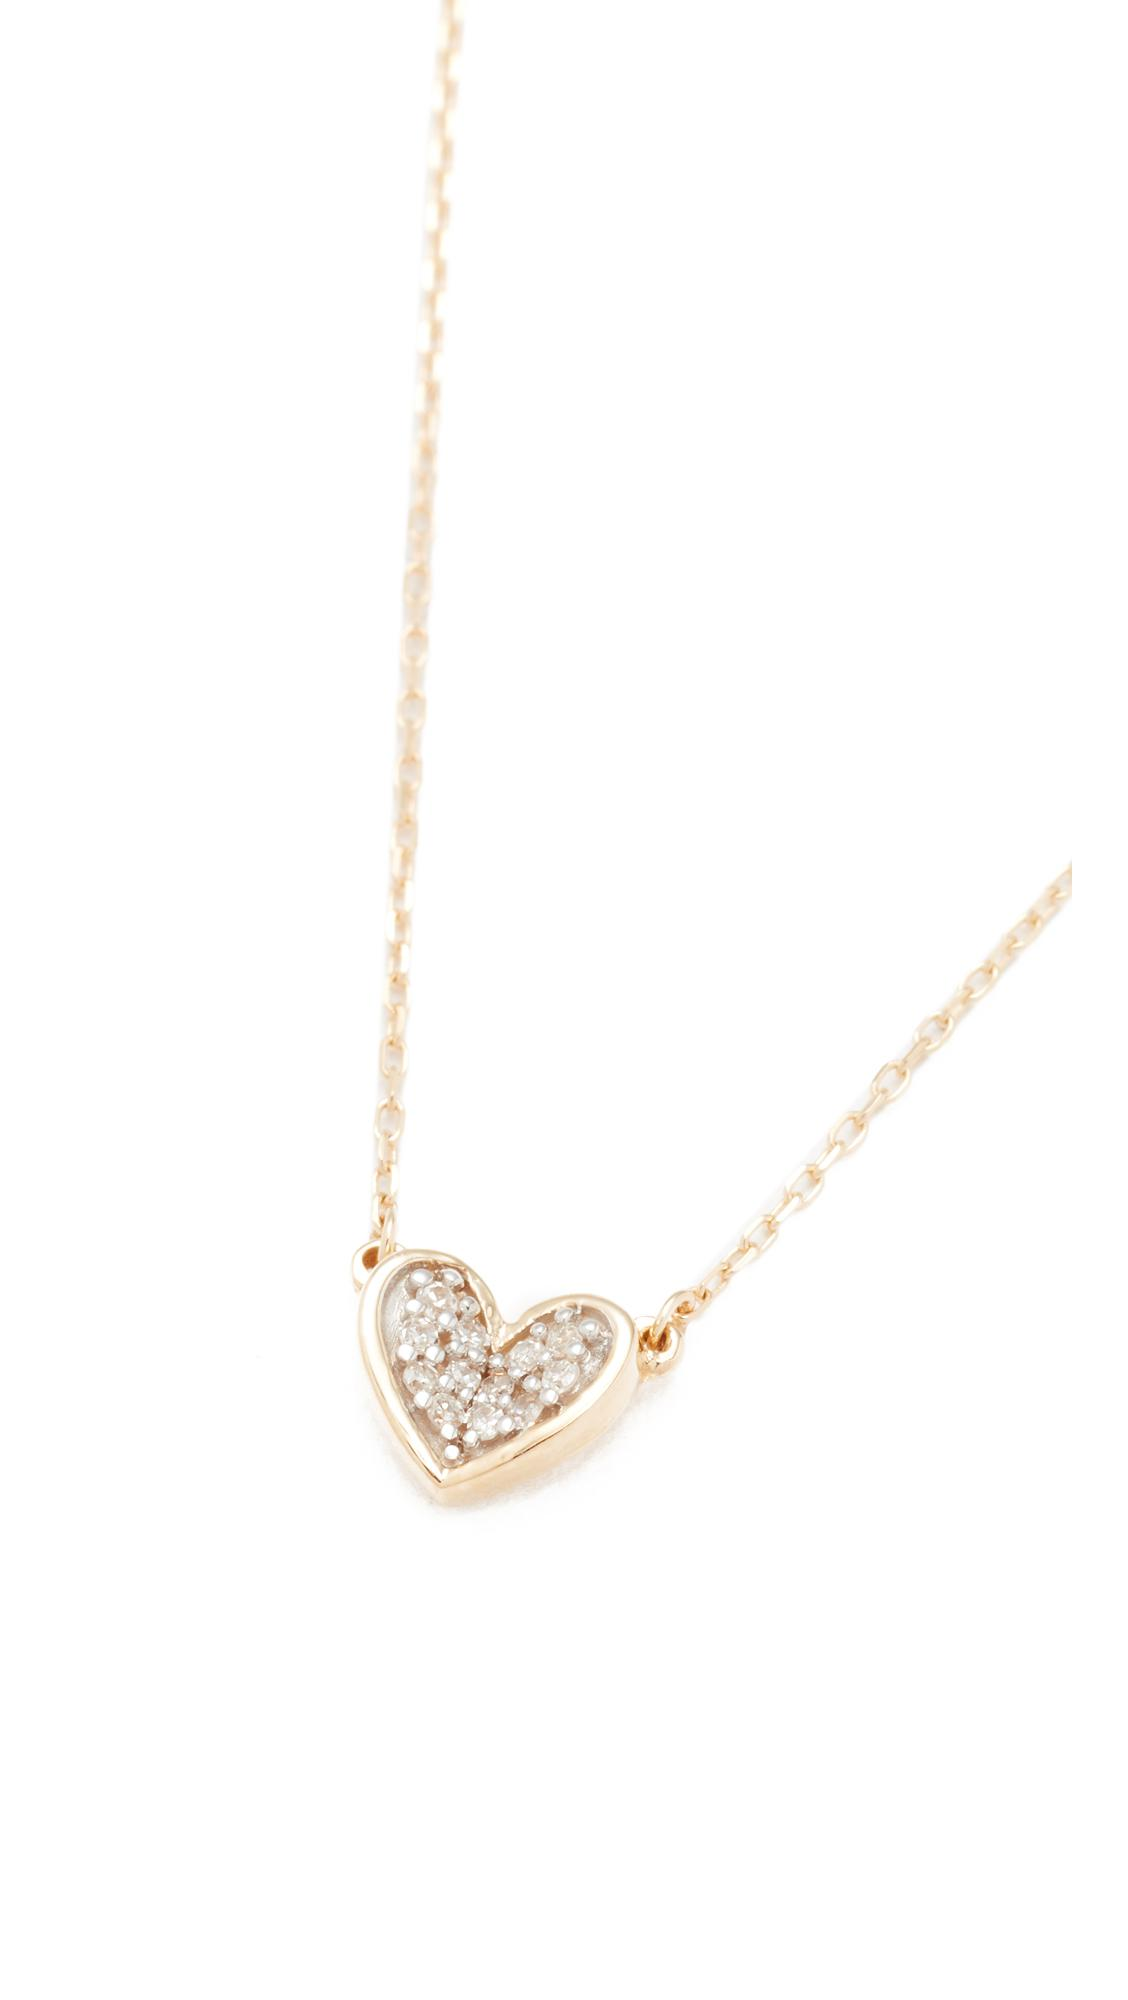 Adina Reyter Super Tiny Pave Folded Heart Necklace in Gold (Metallic)